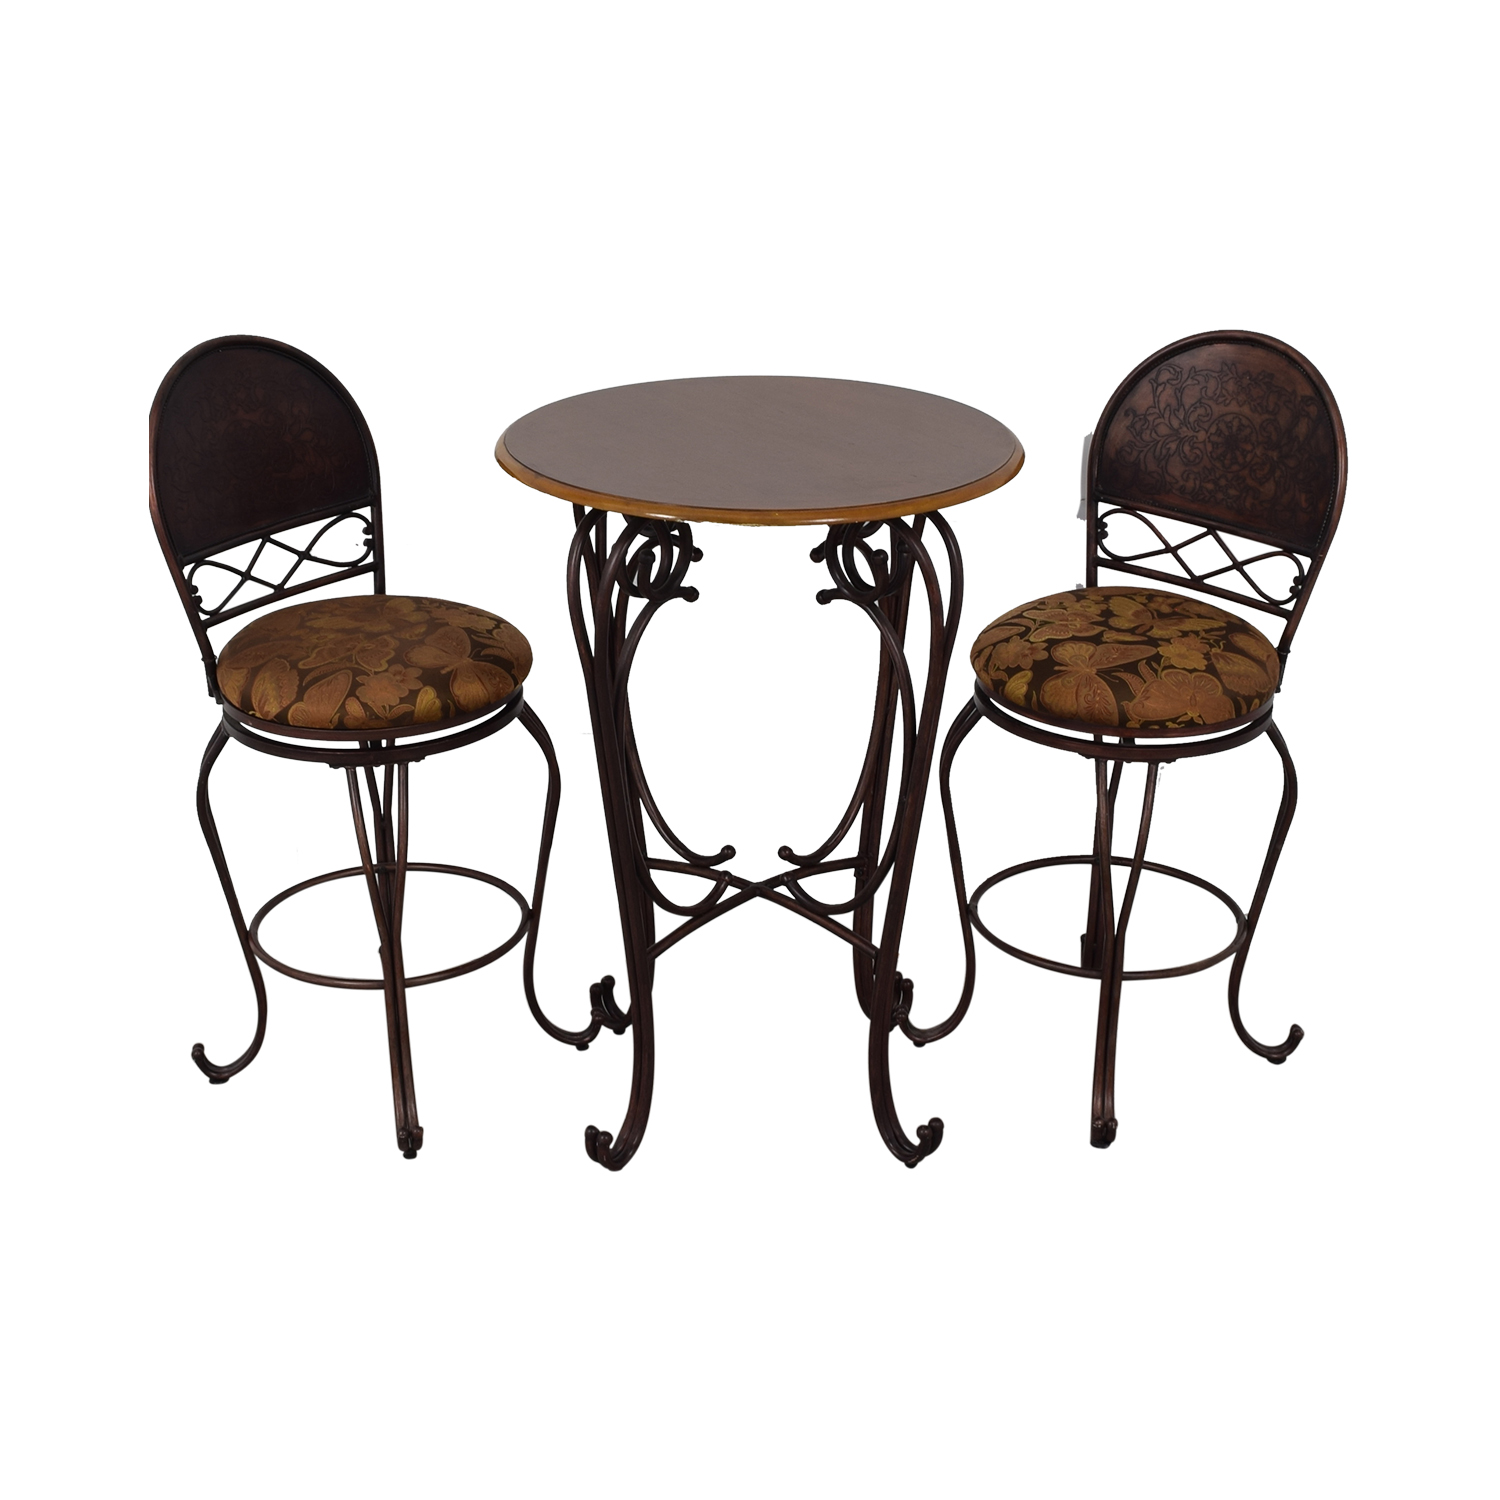 Wood and Metal Bistro Pub Table and Stools for sale